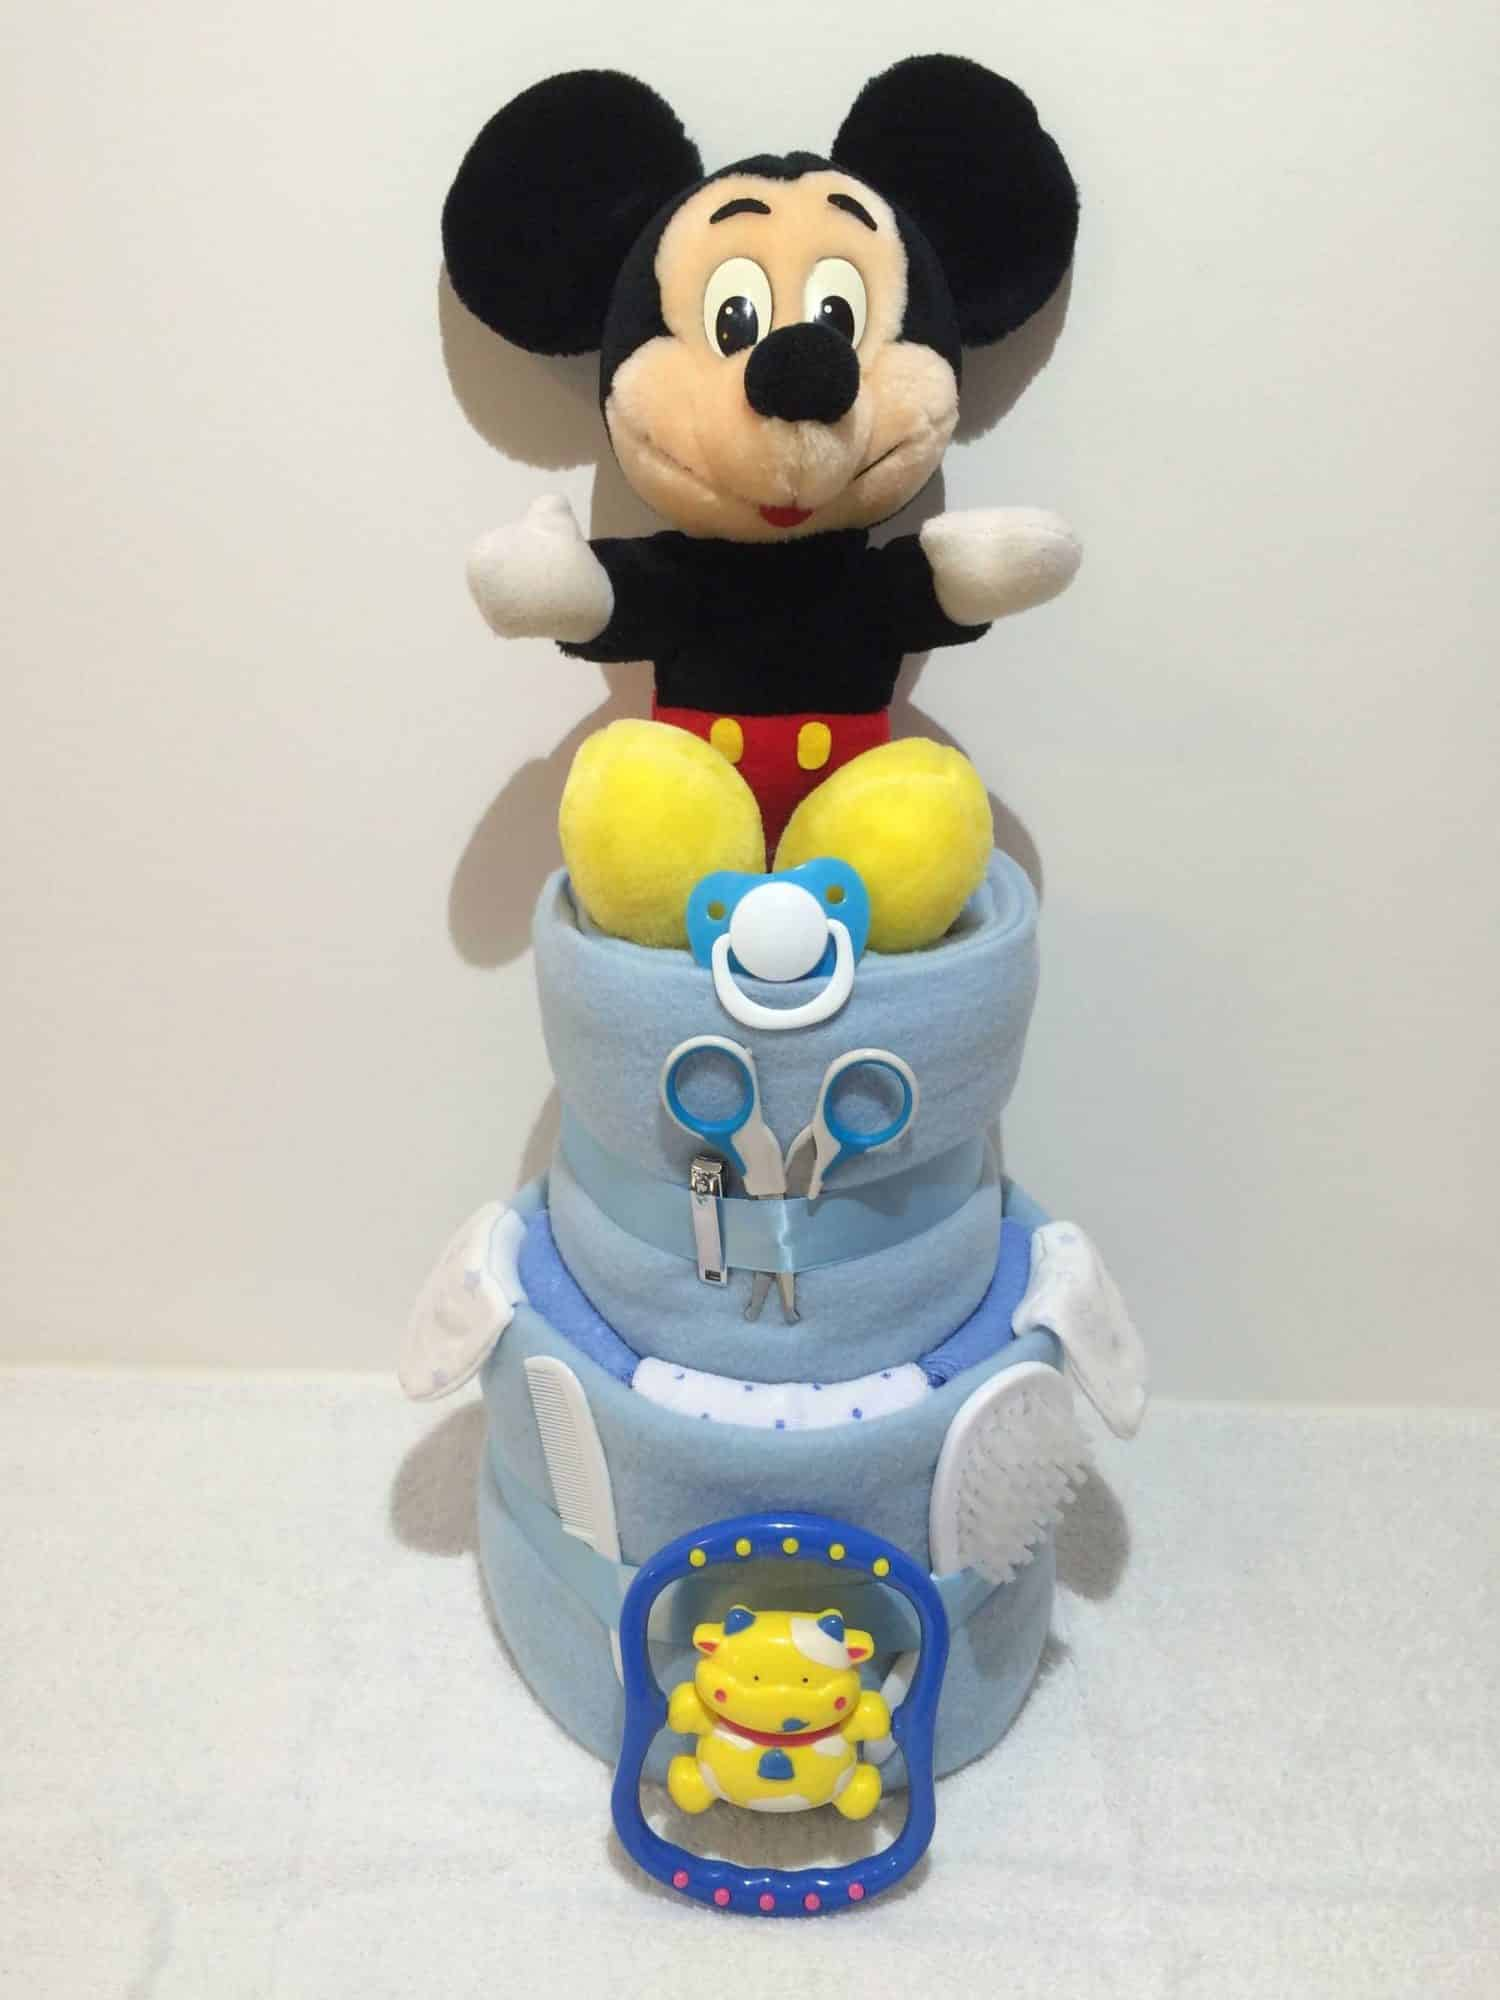 How To Make A Mickey Mouse Cake From Scratch